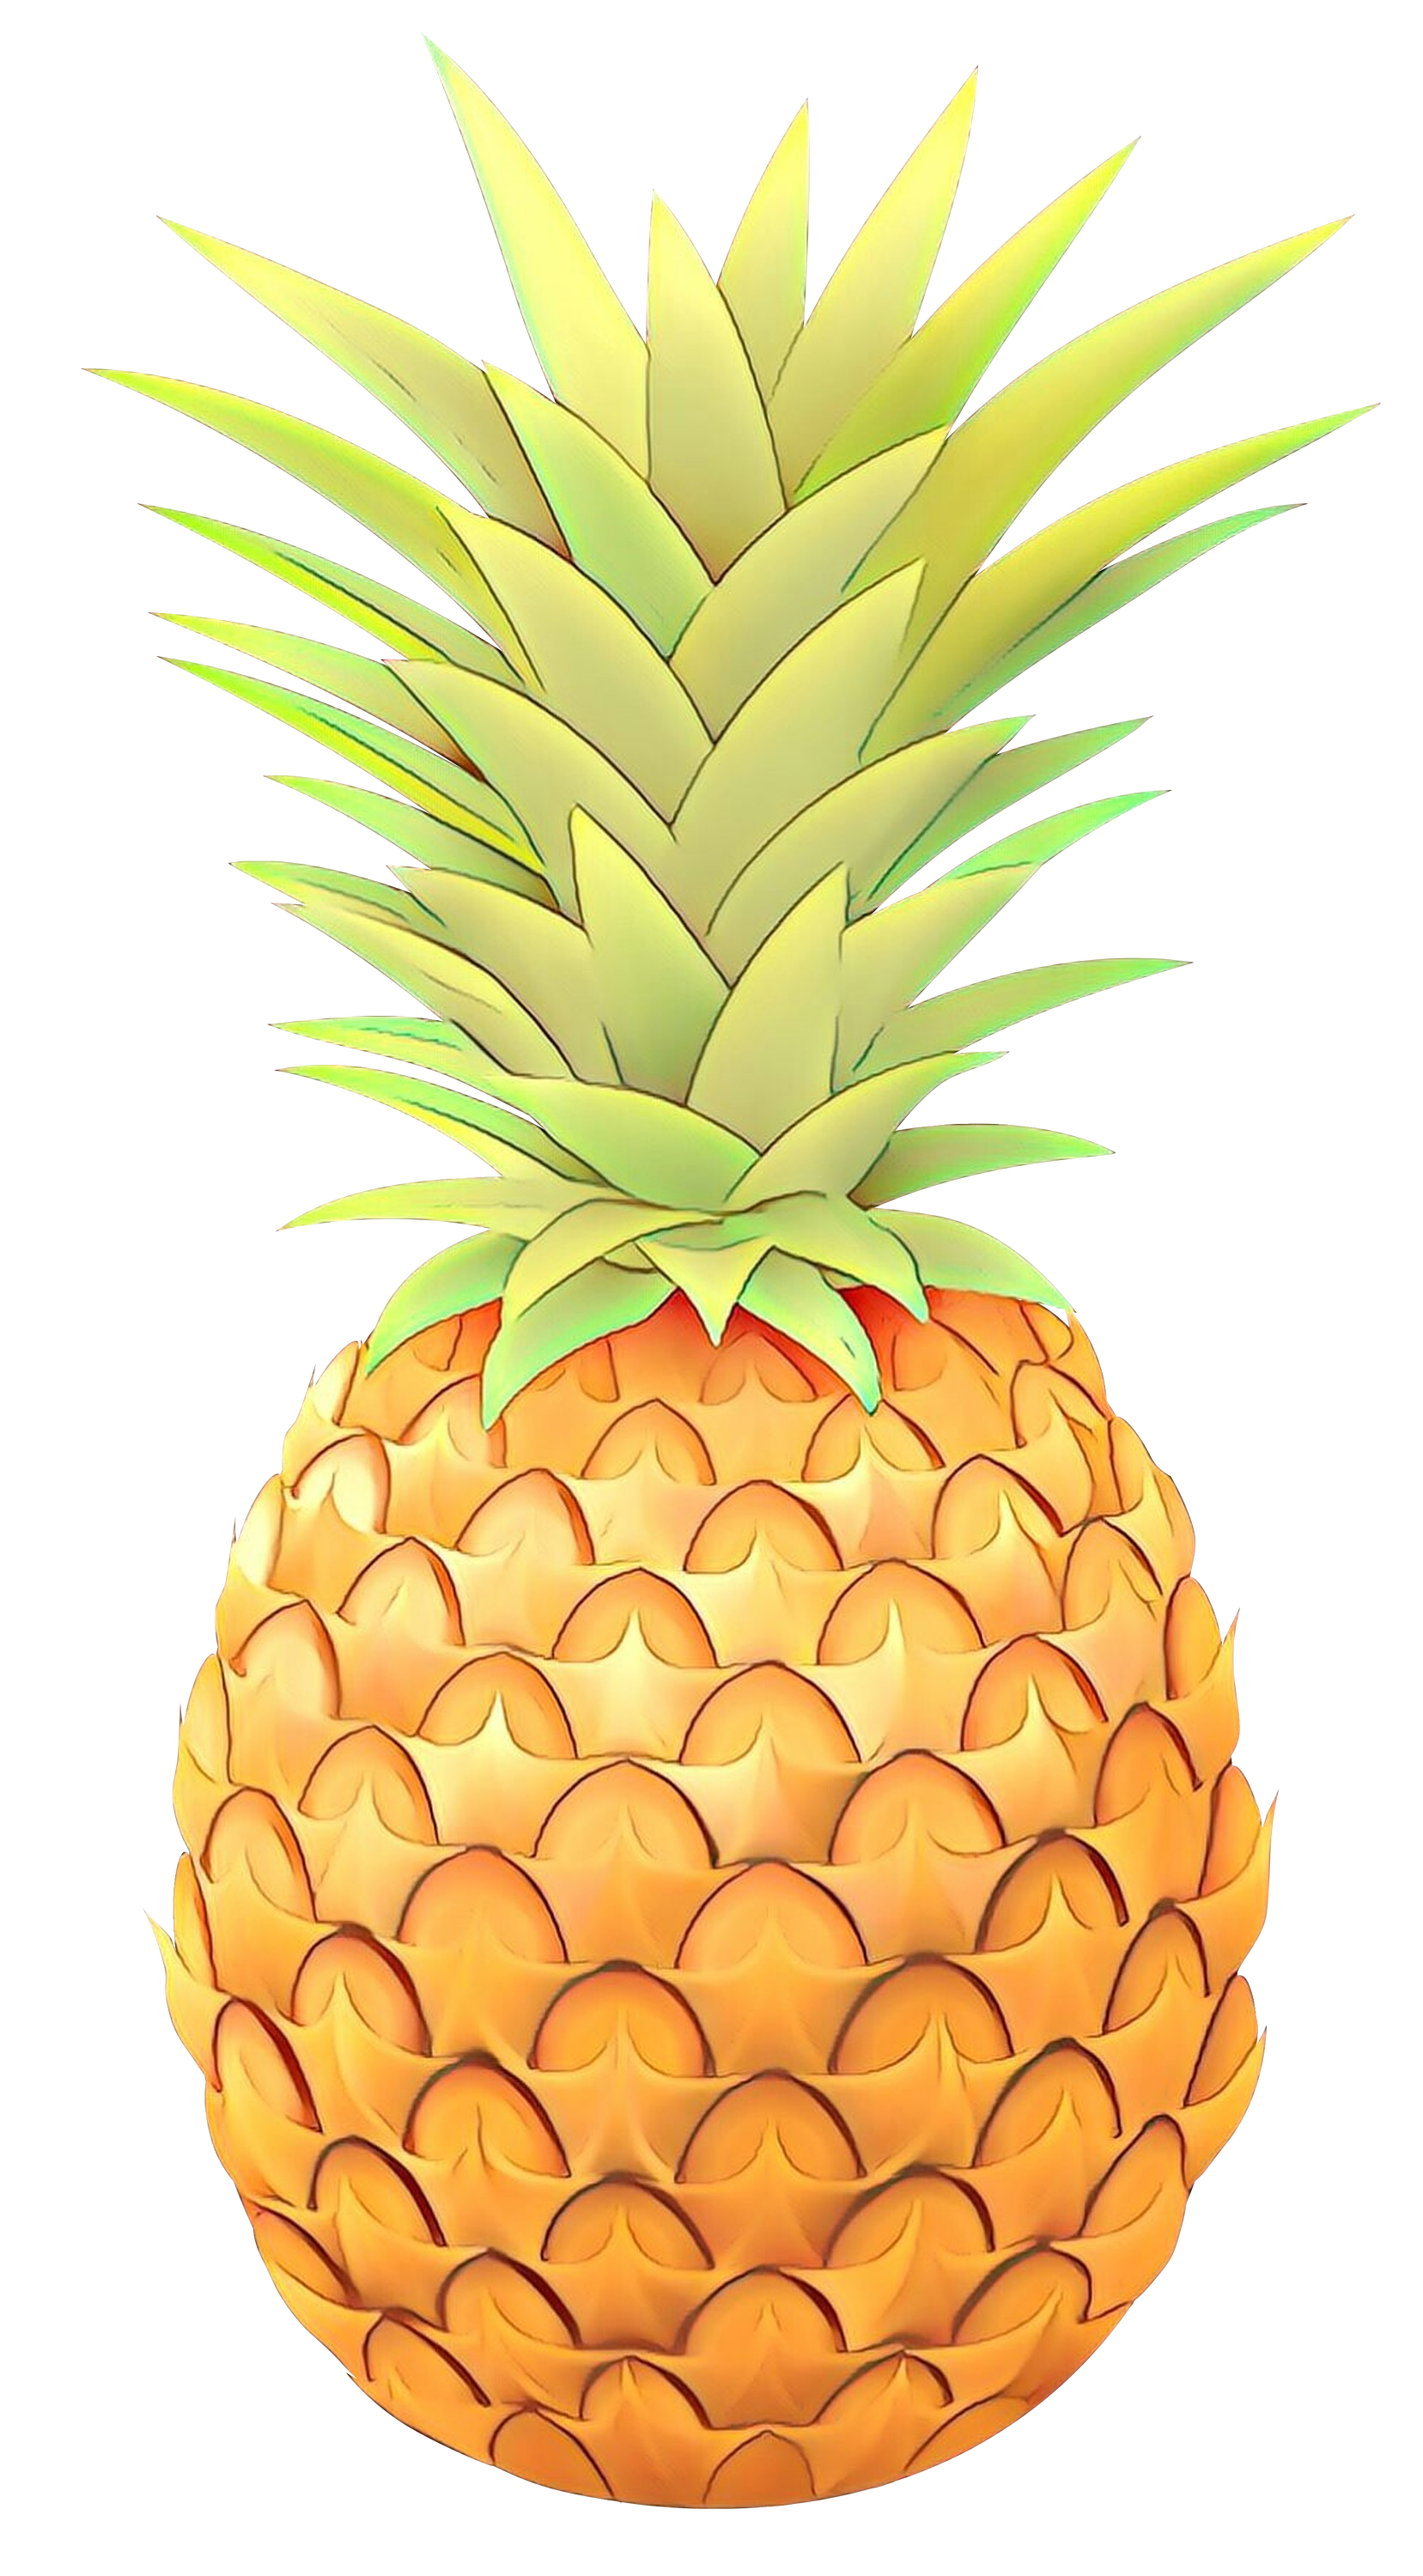 Pineapple clipart vector. Portable network graphics clip